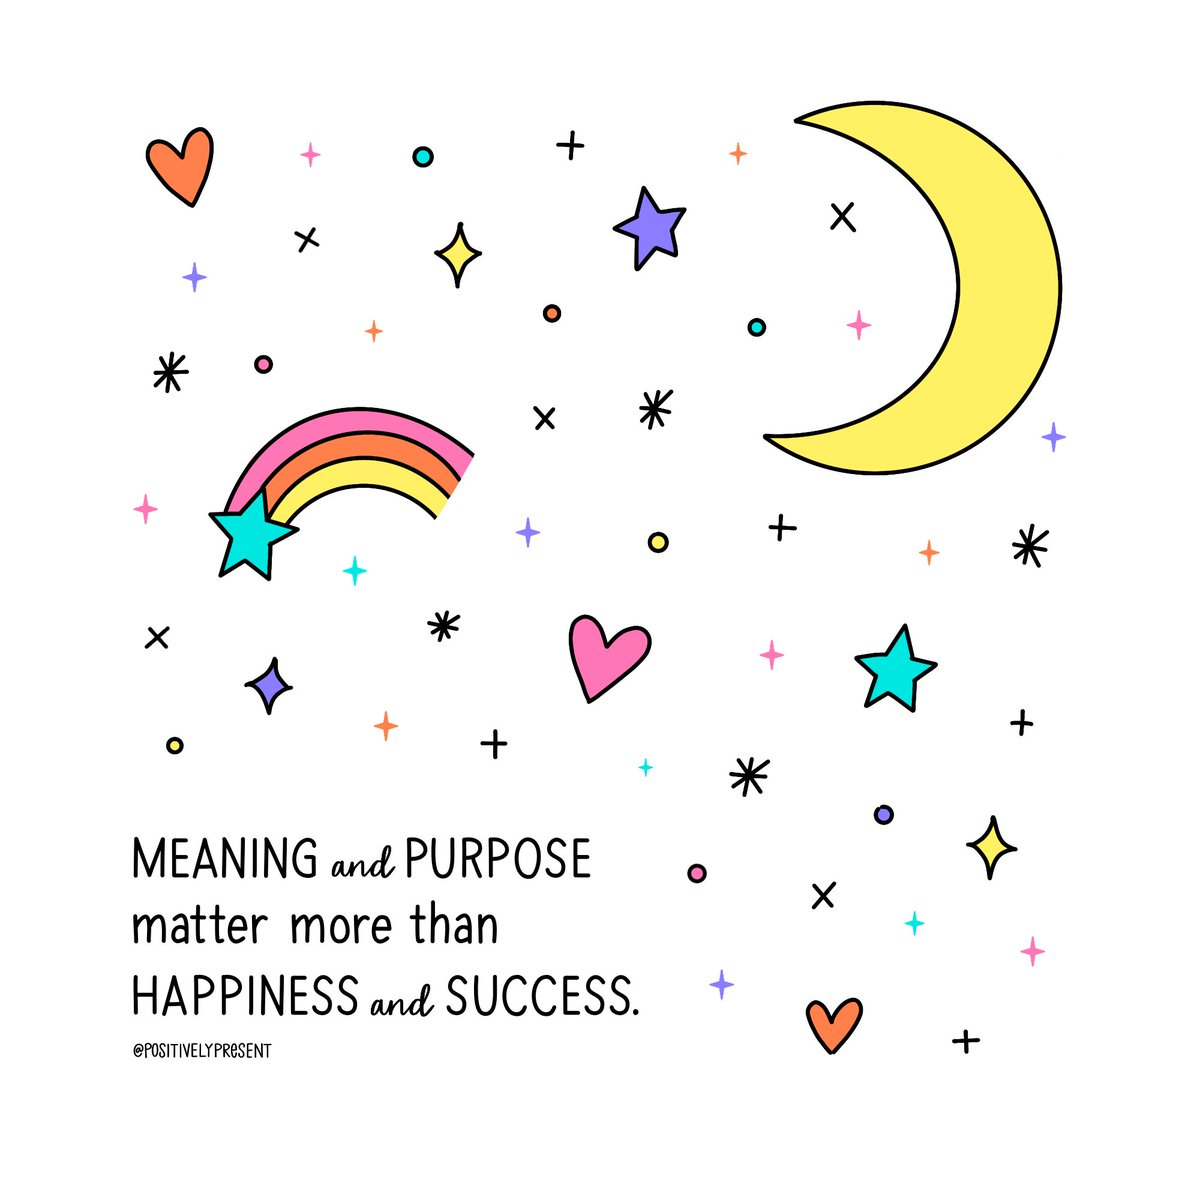 focus on meaning and purpose over happiness and success. 💫